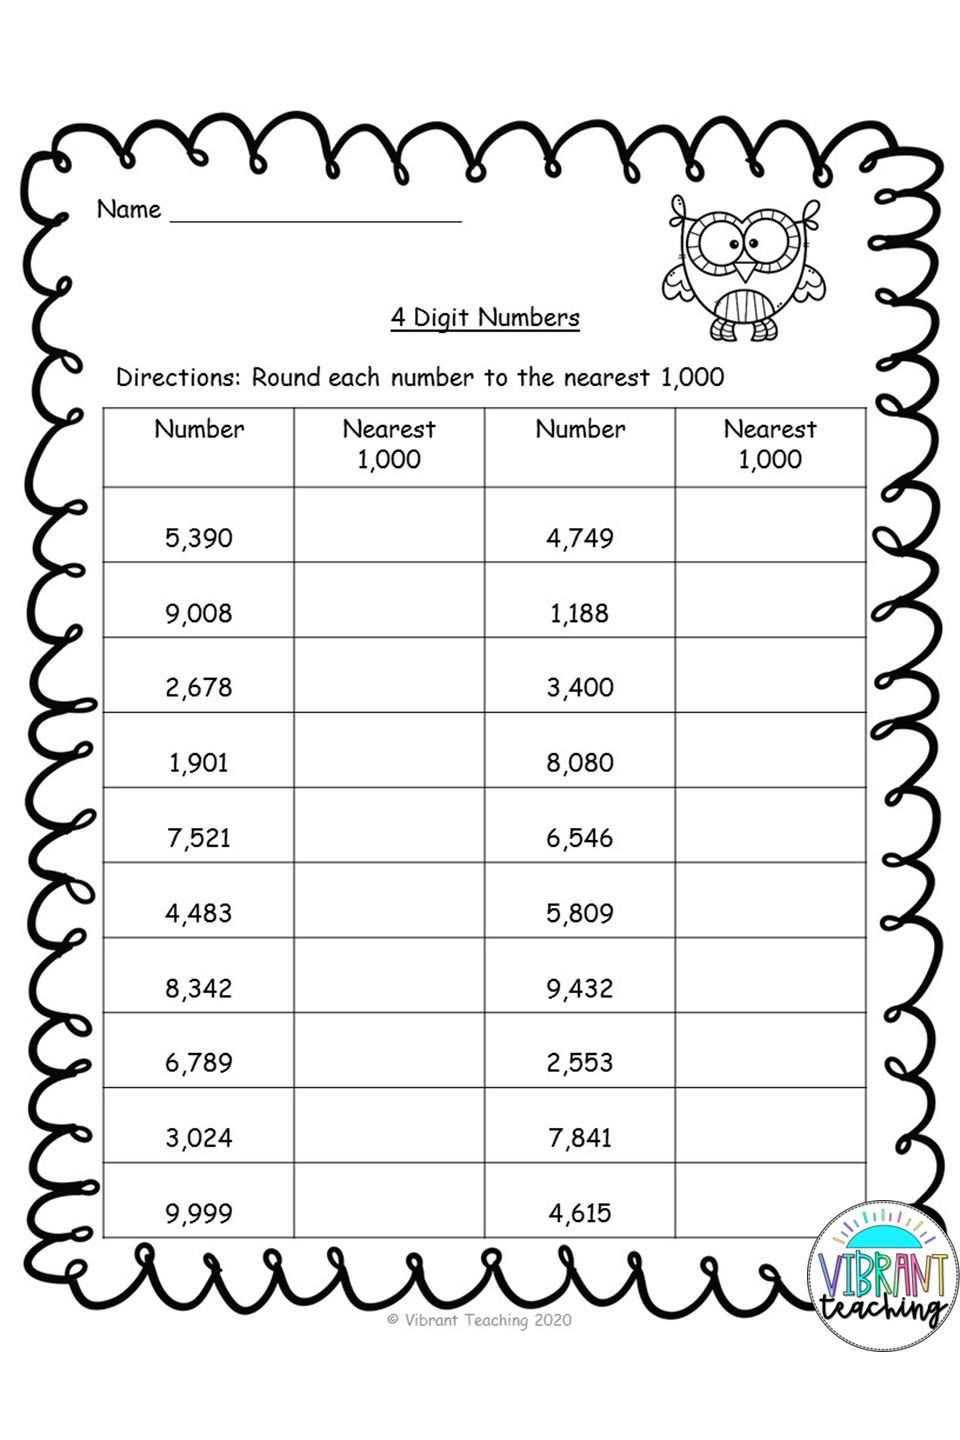 Rounding Worksheets Nearest 1 000 Rounding Worksheets Kids Worksheets Printables Elementary Math